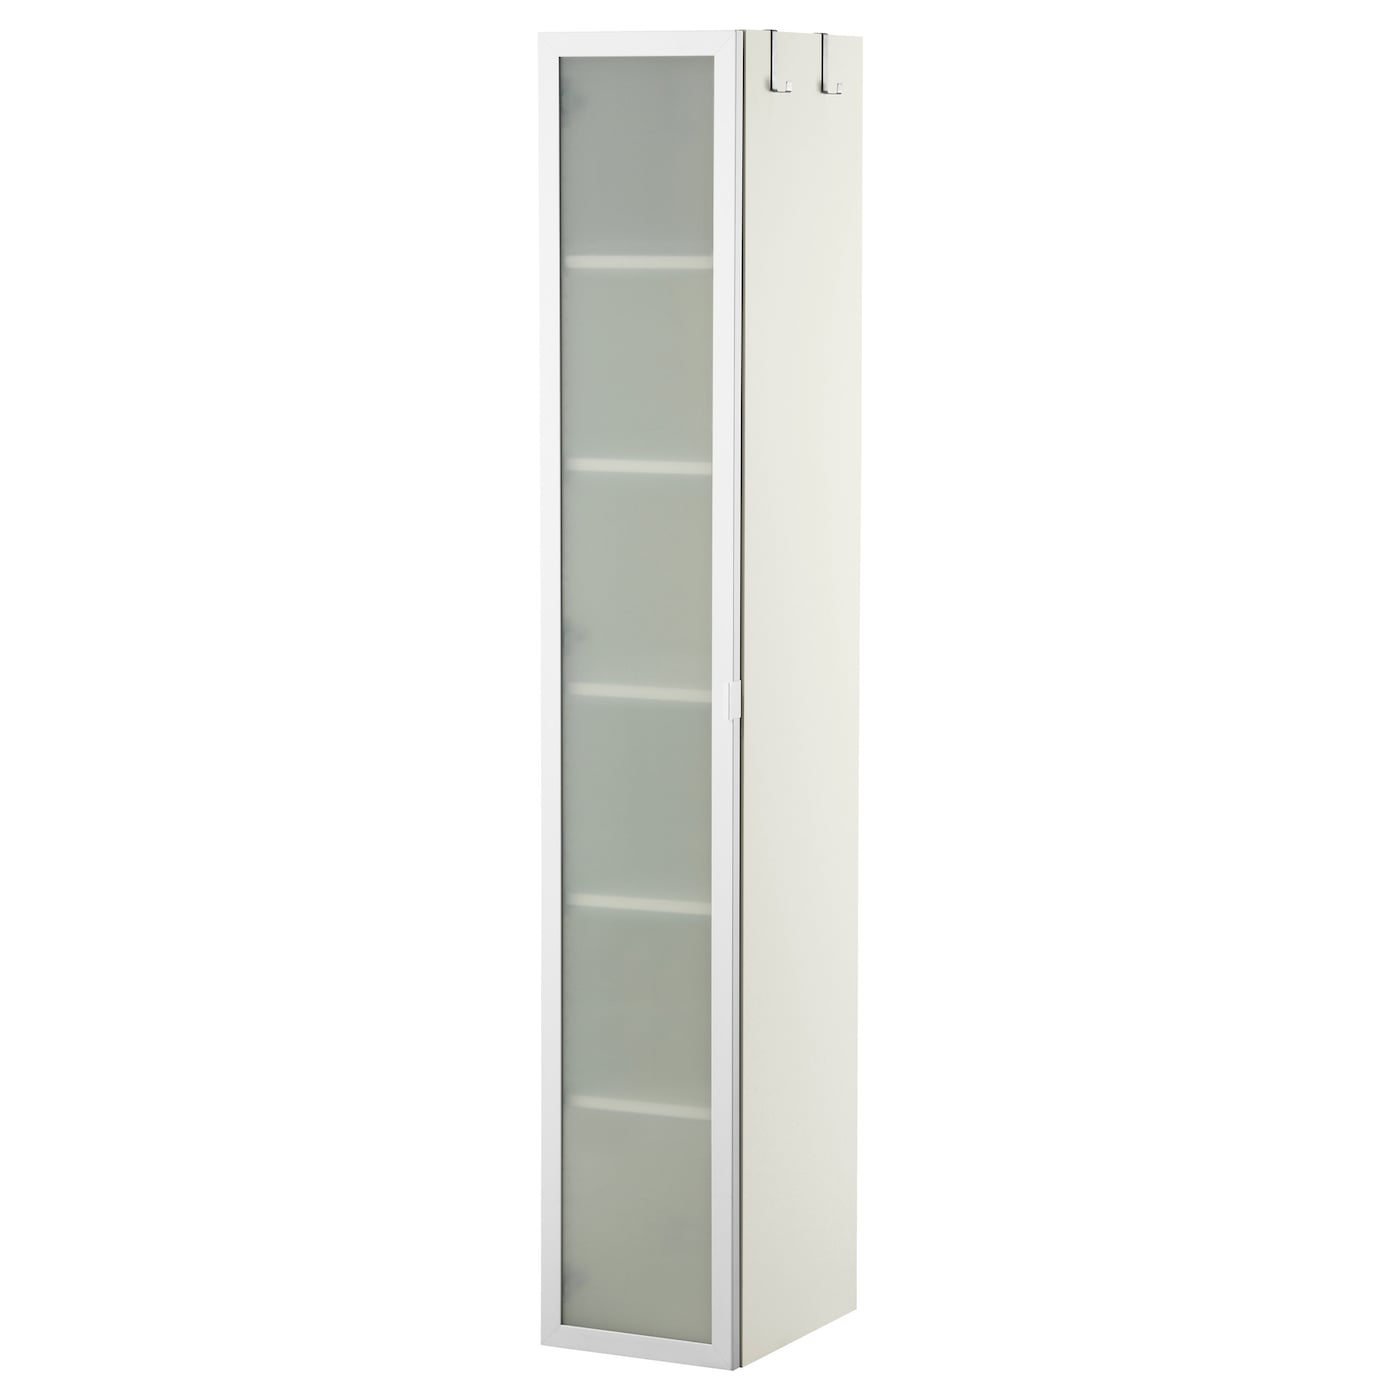 IKEA LILLÅNGEN high cabinet You can mount the door to open from the right or left.